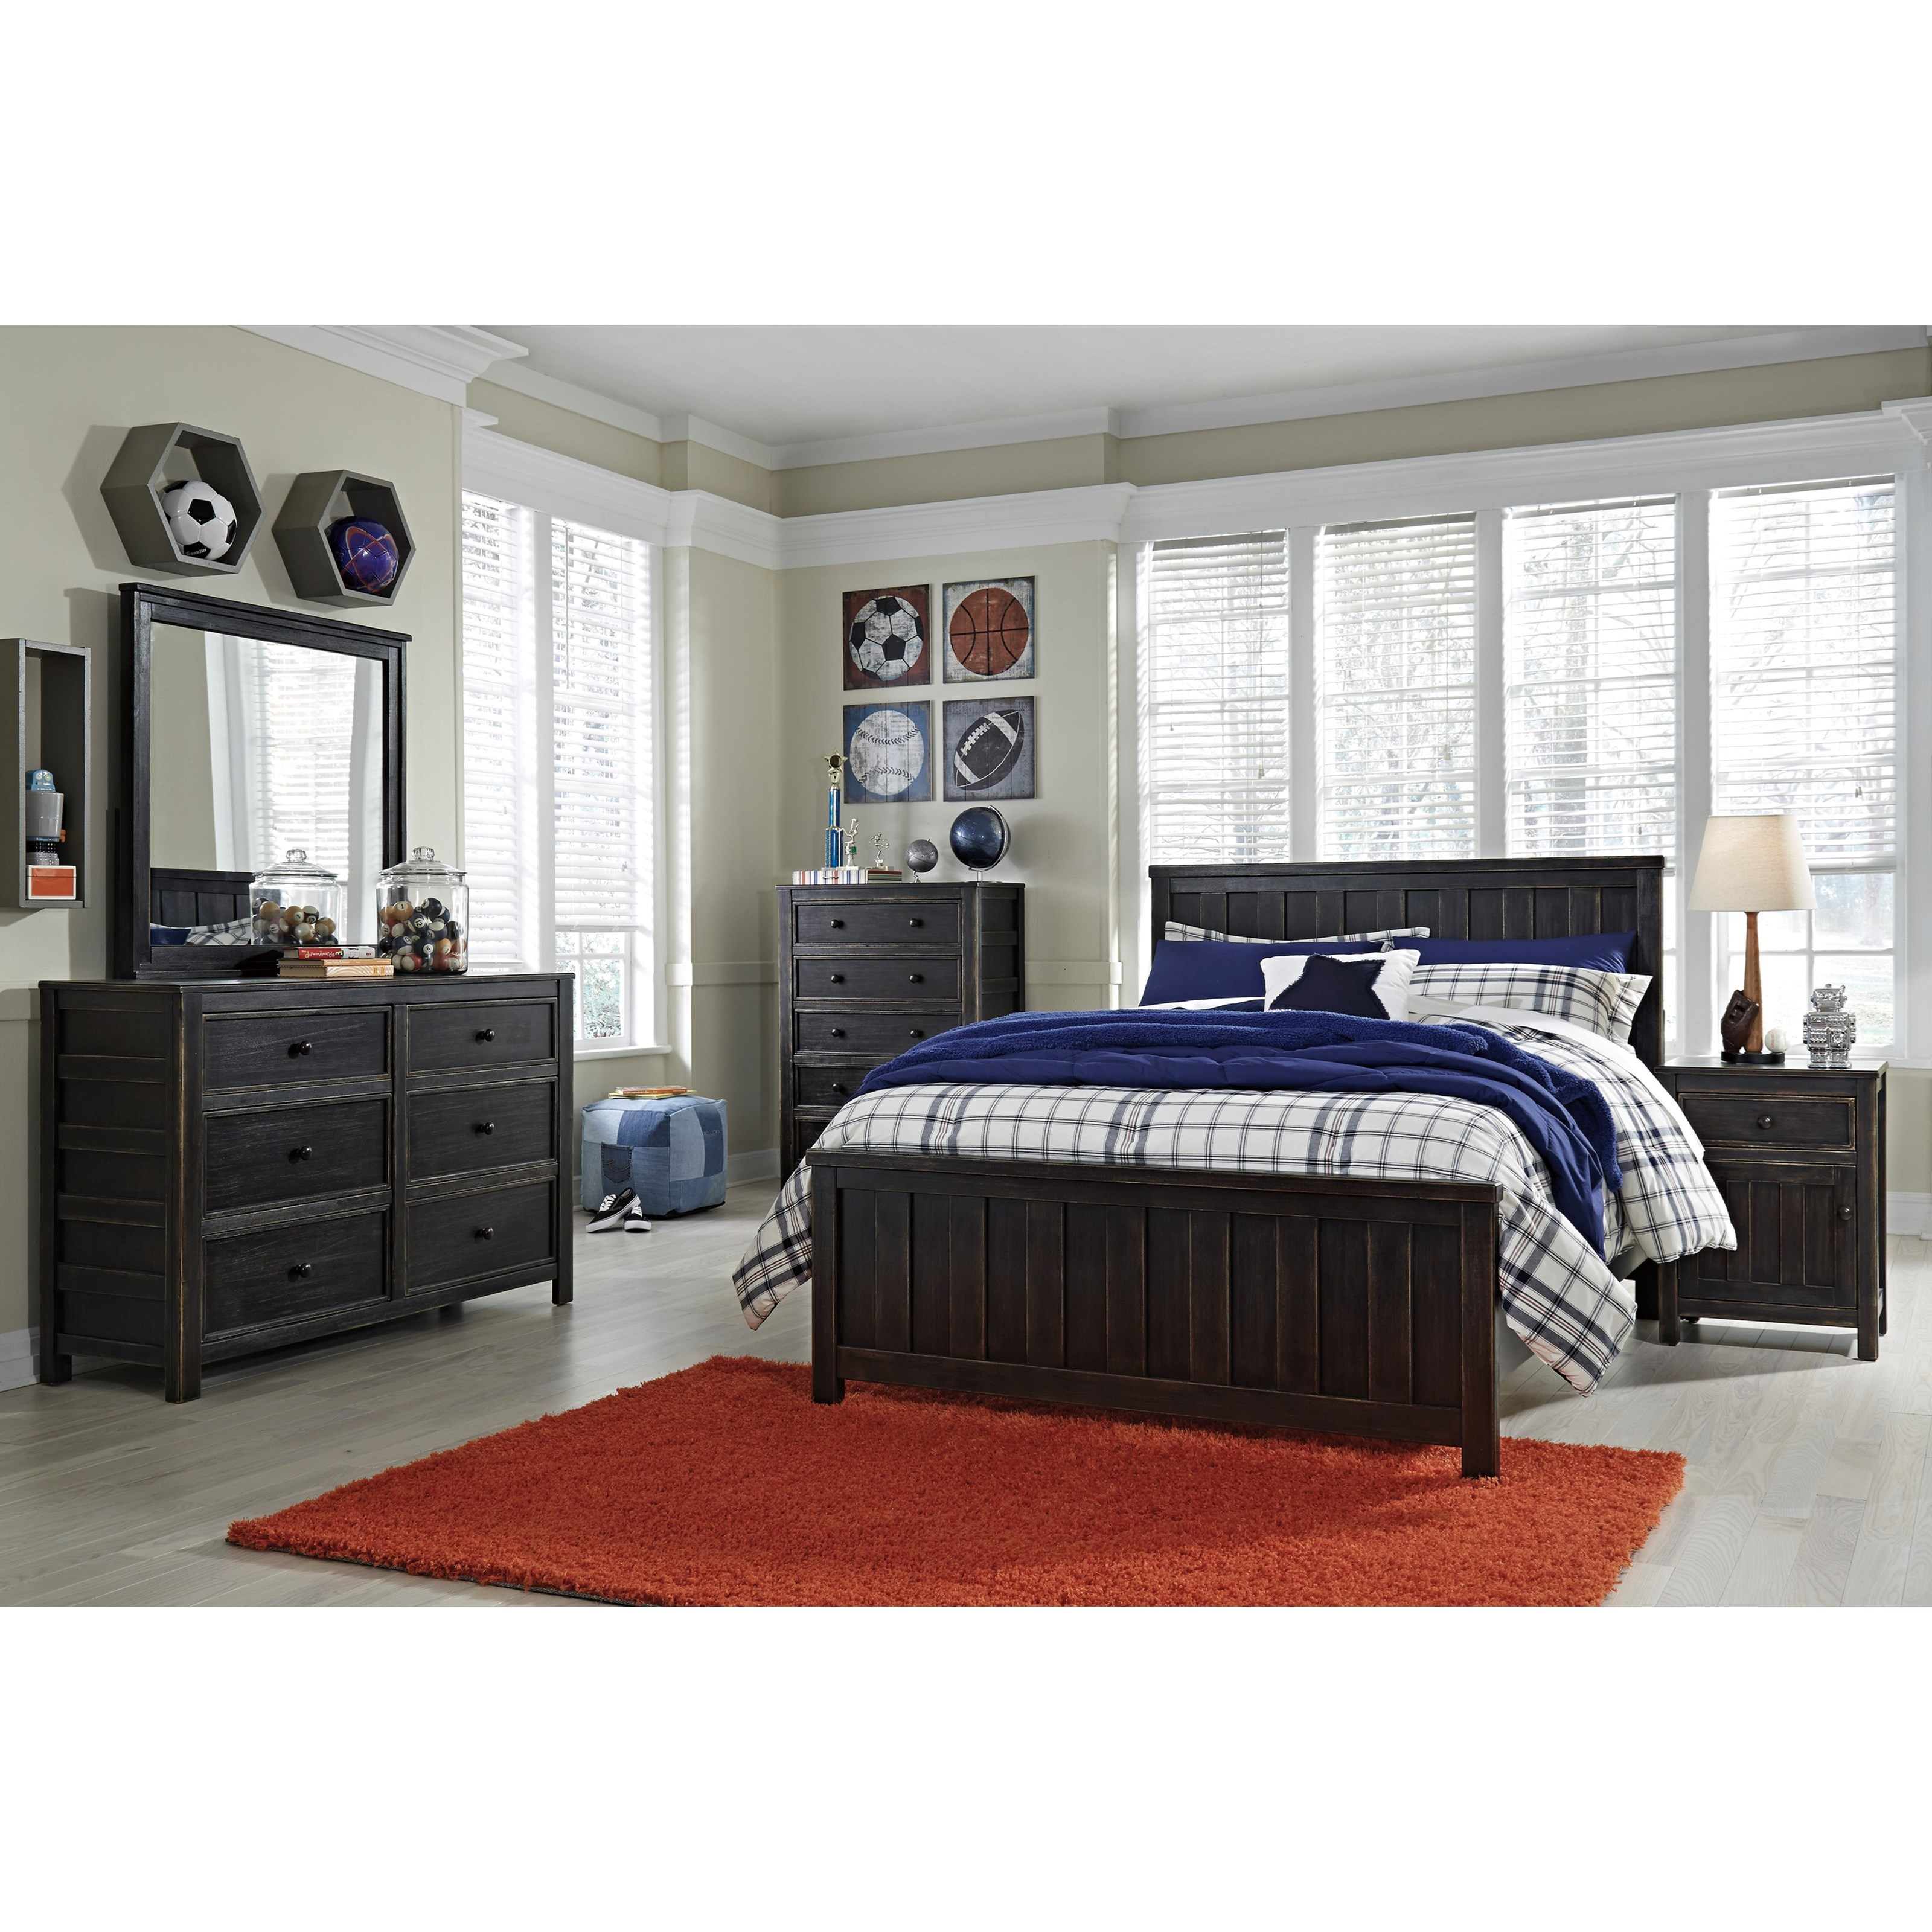 Ashley signature design jaysom full bedroom group dunk for Bedroom furniture groups